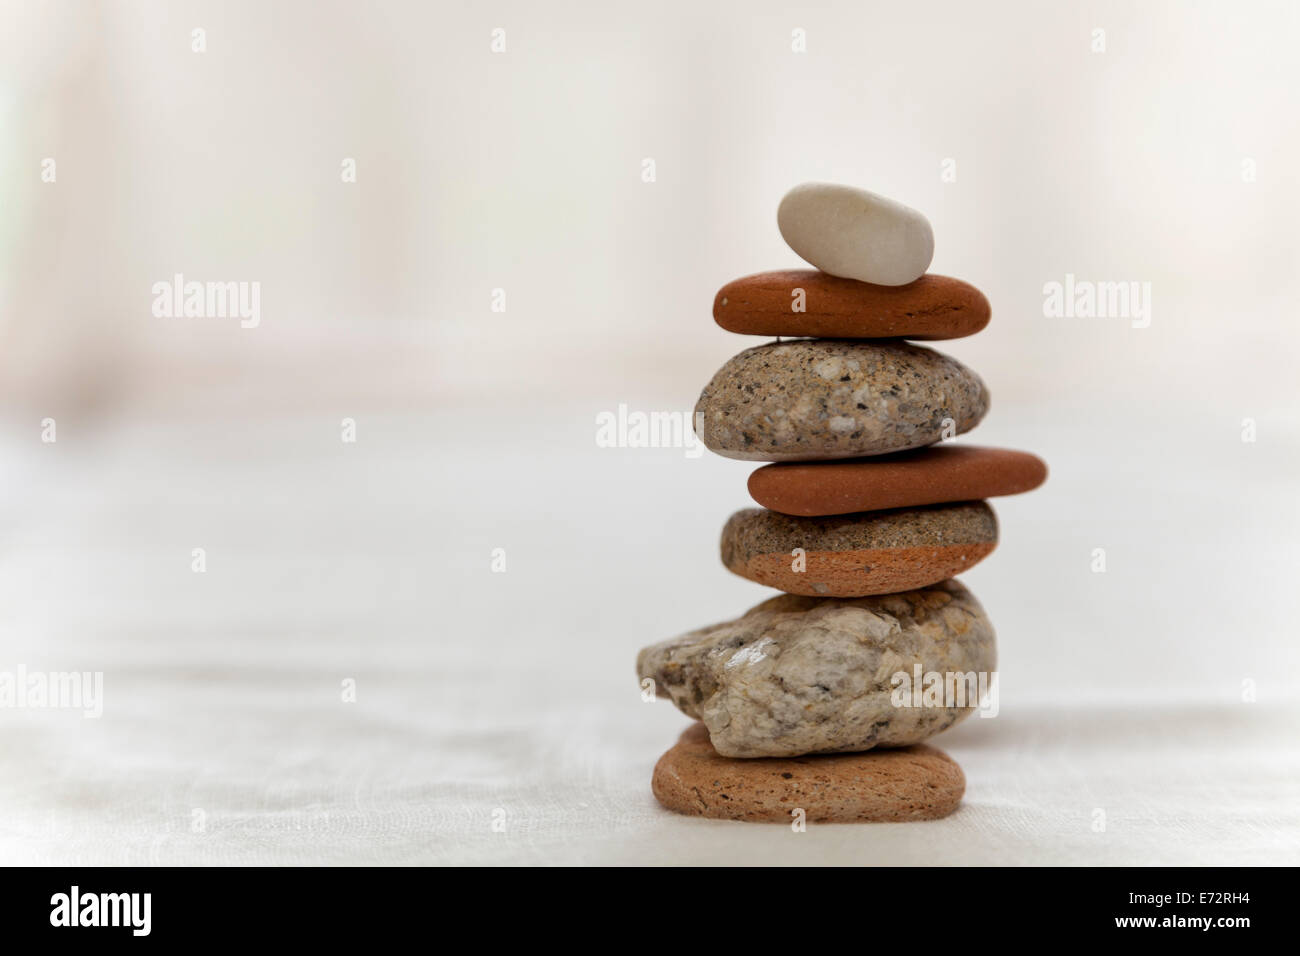 Still life; stone-stacking, pebbles stacked and sitting on a white table top with white background. Zen like practice - Stock Image